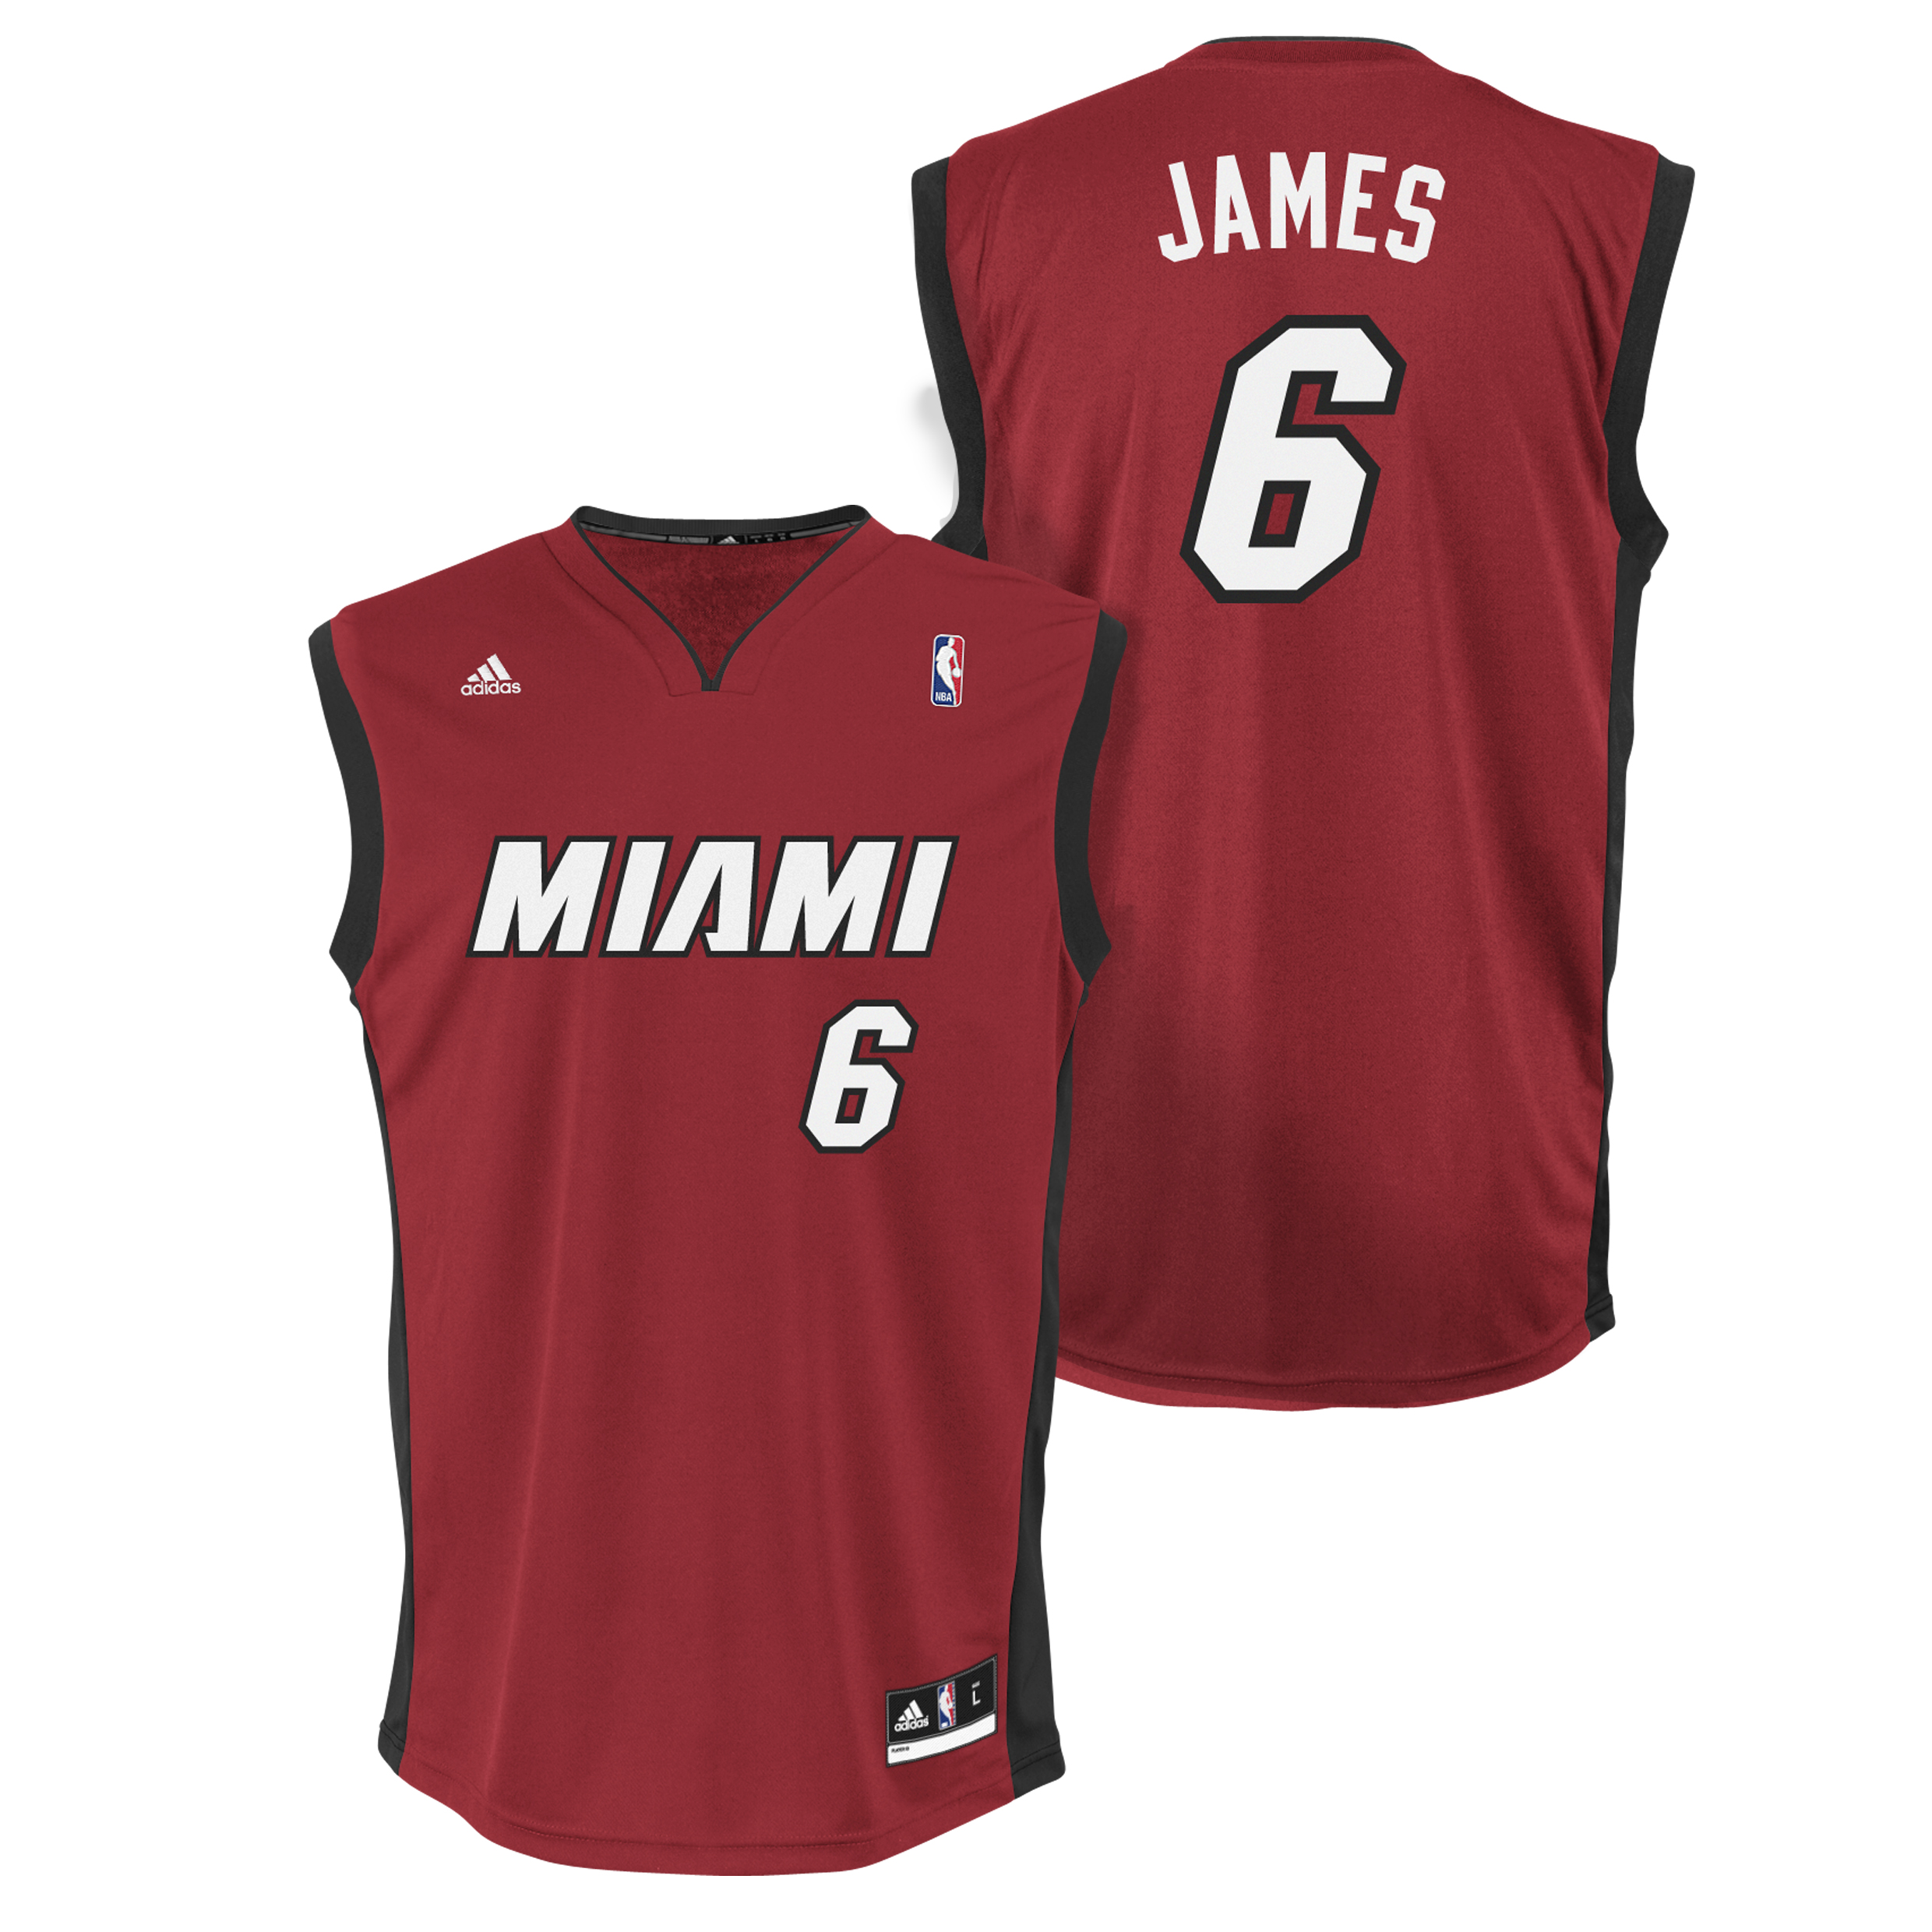 Miami Heat Alternate Road Replica Jersey - LeBron James - Mens